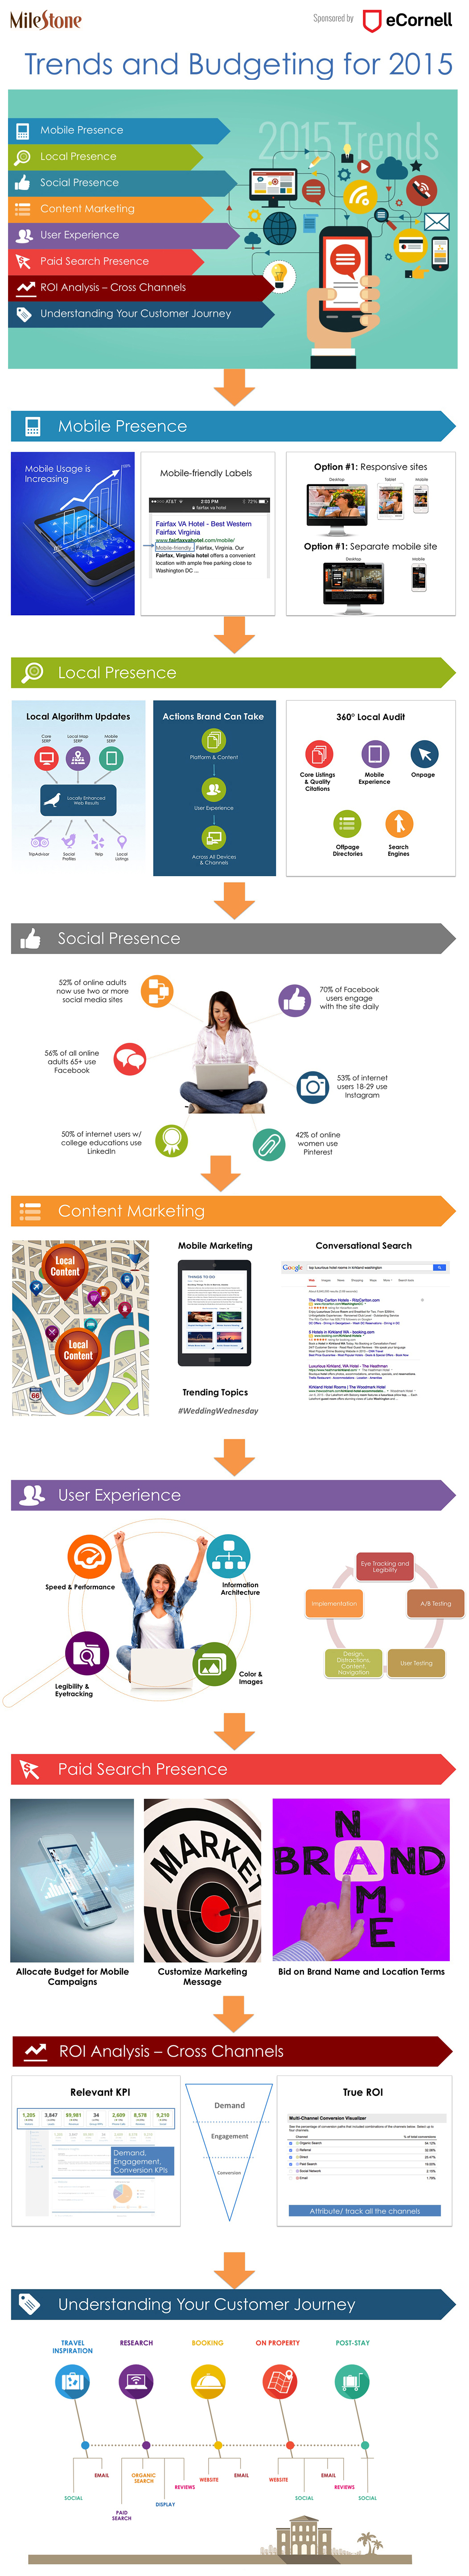 2015 Top Digital Marketing Trends for the Hospitality Industry [Infographic & Webinar Recap]